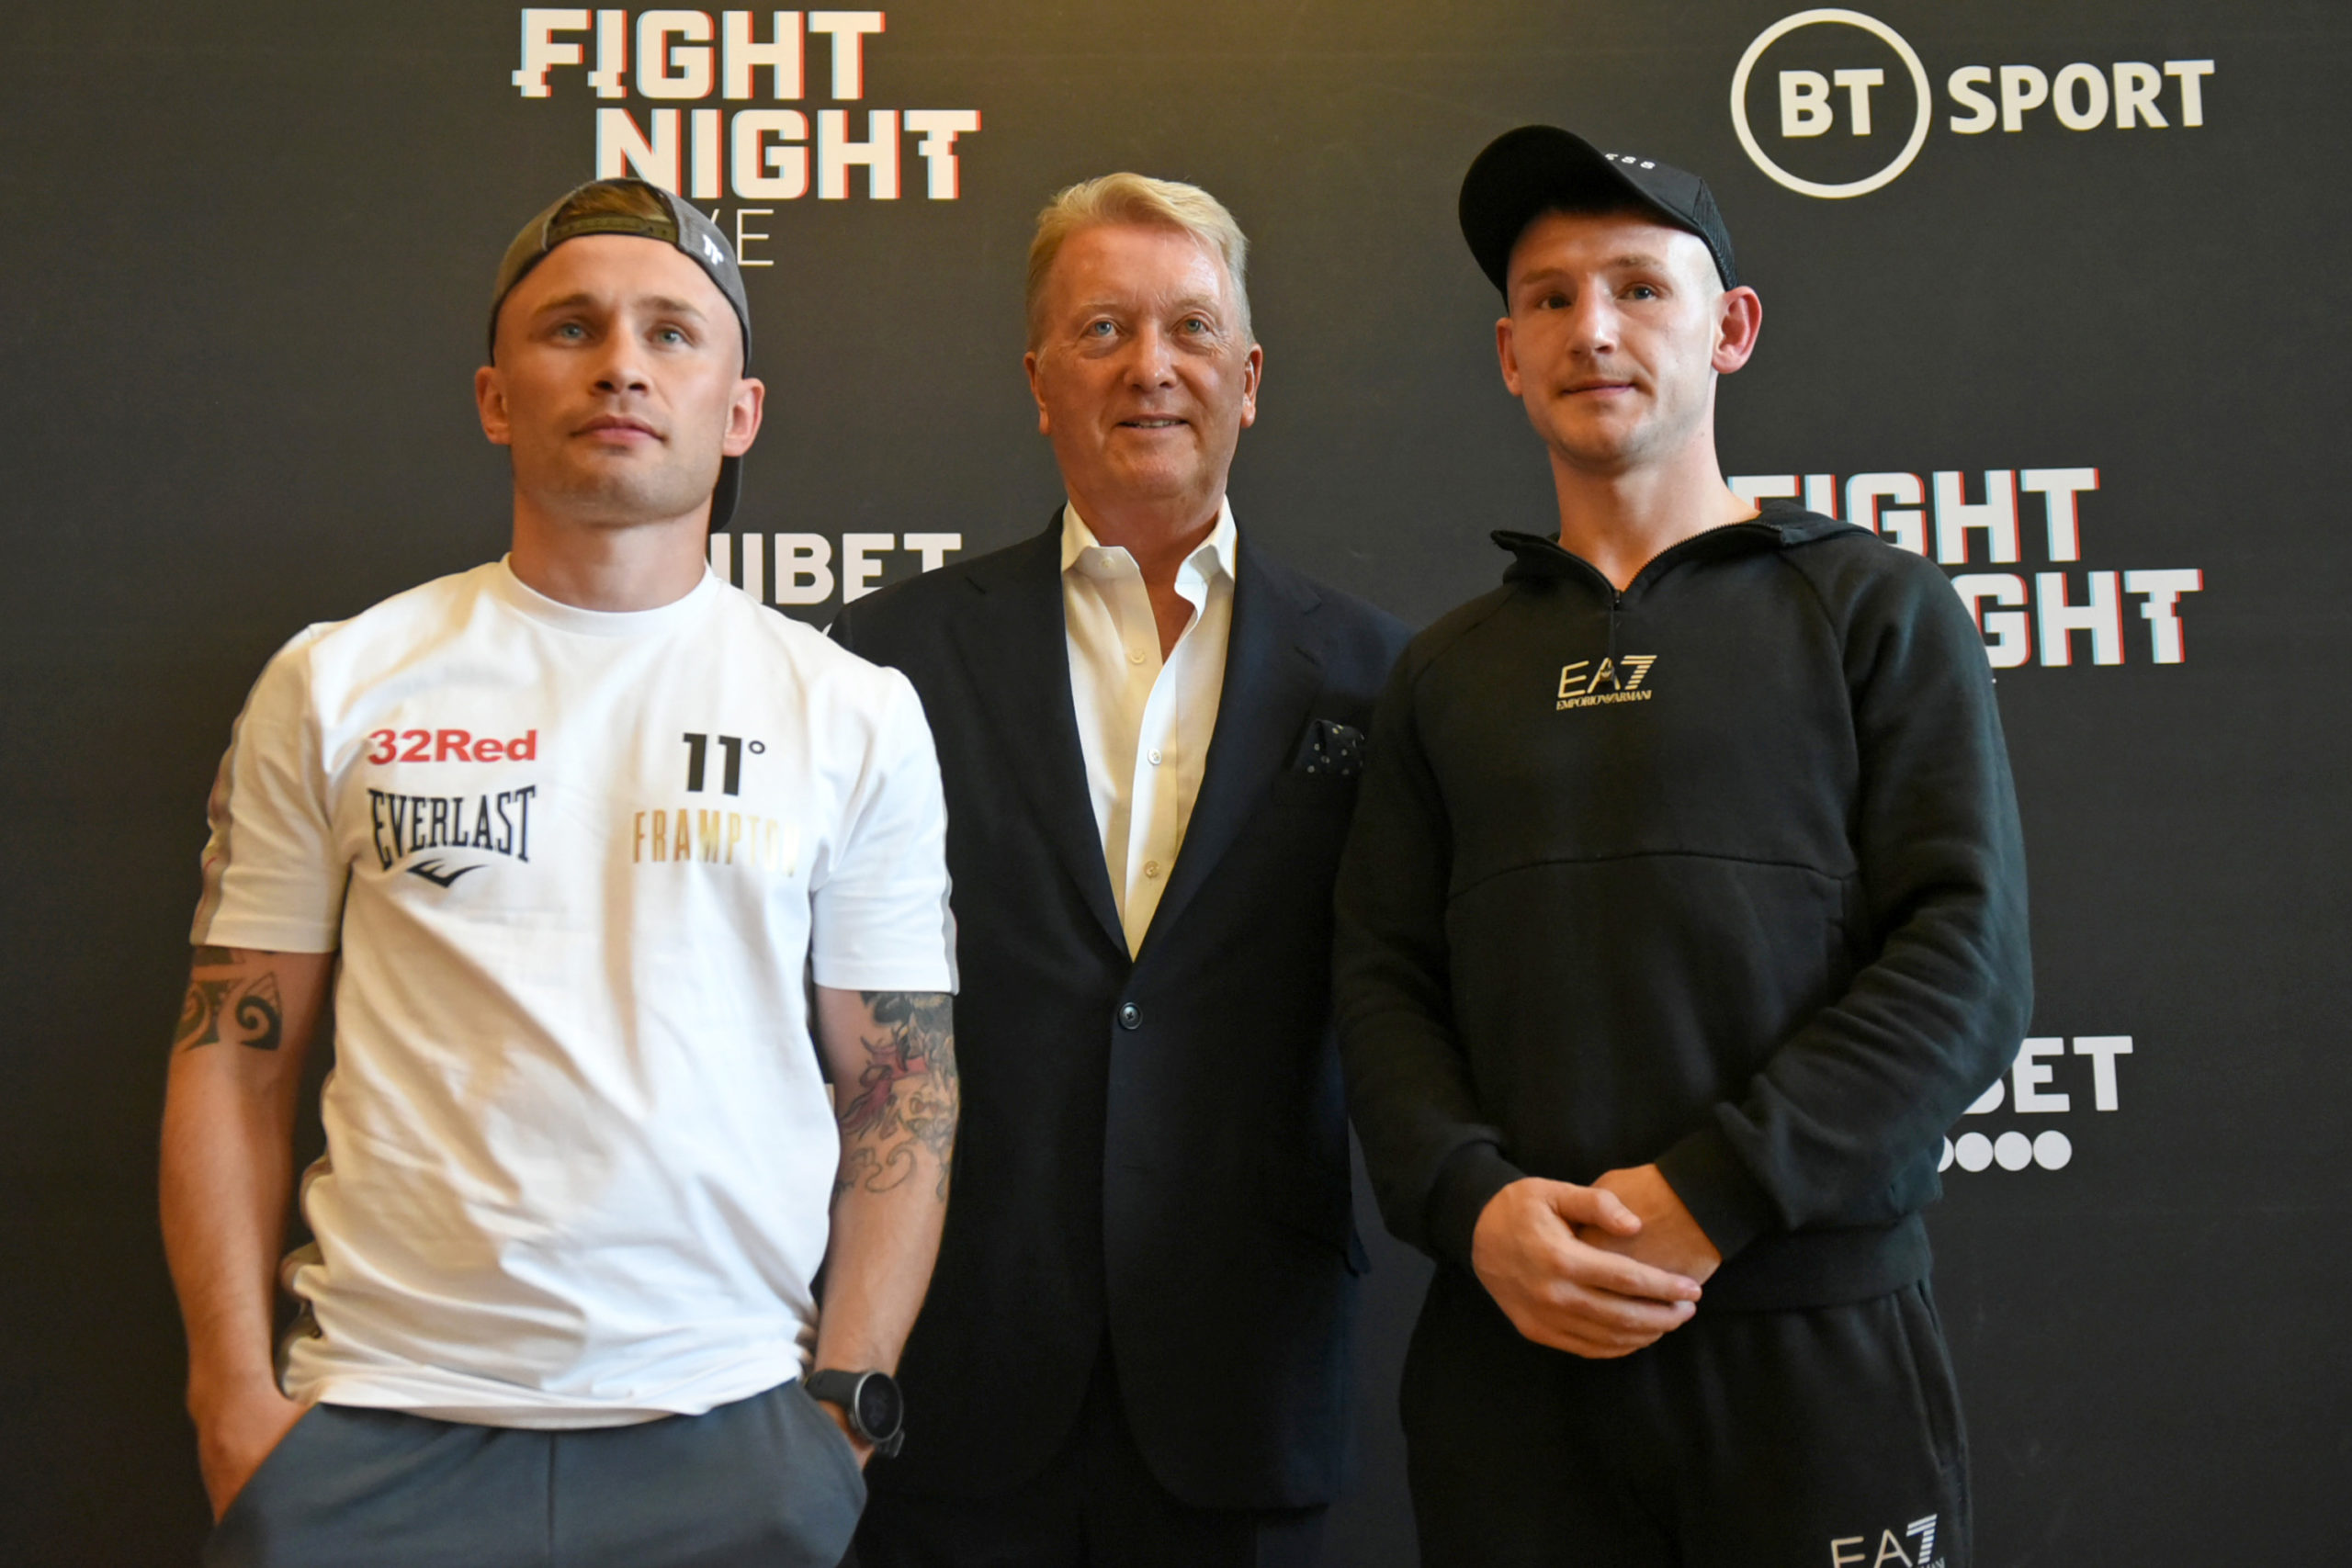 From left, Carl Frampton, promoter Frank Warren and Darren Traynor.